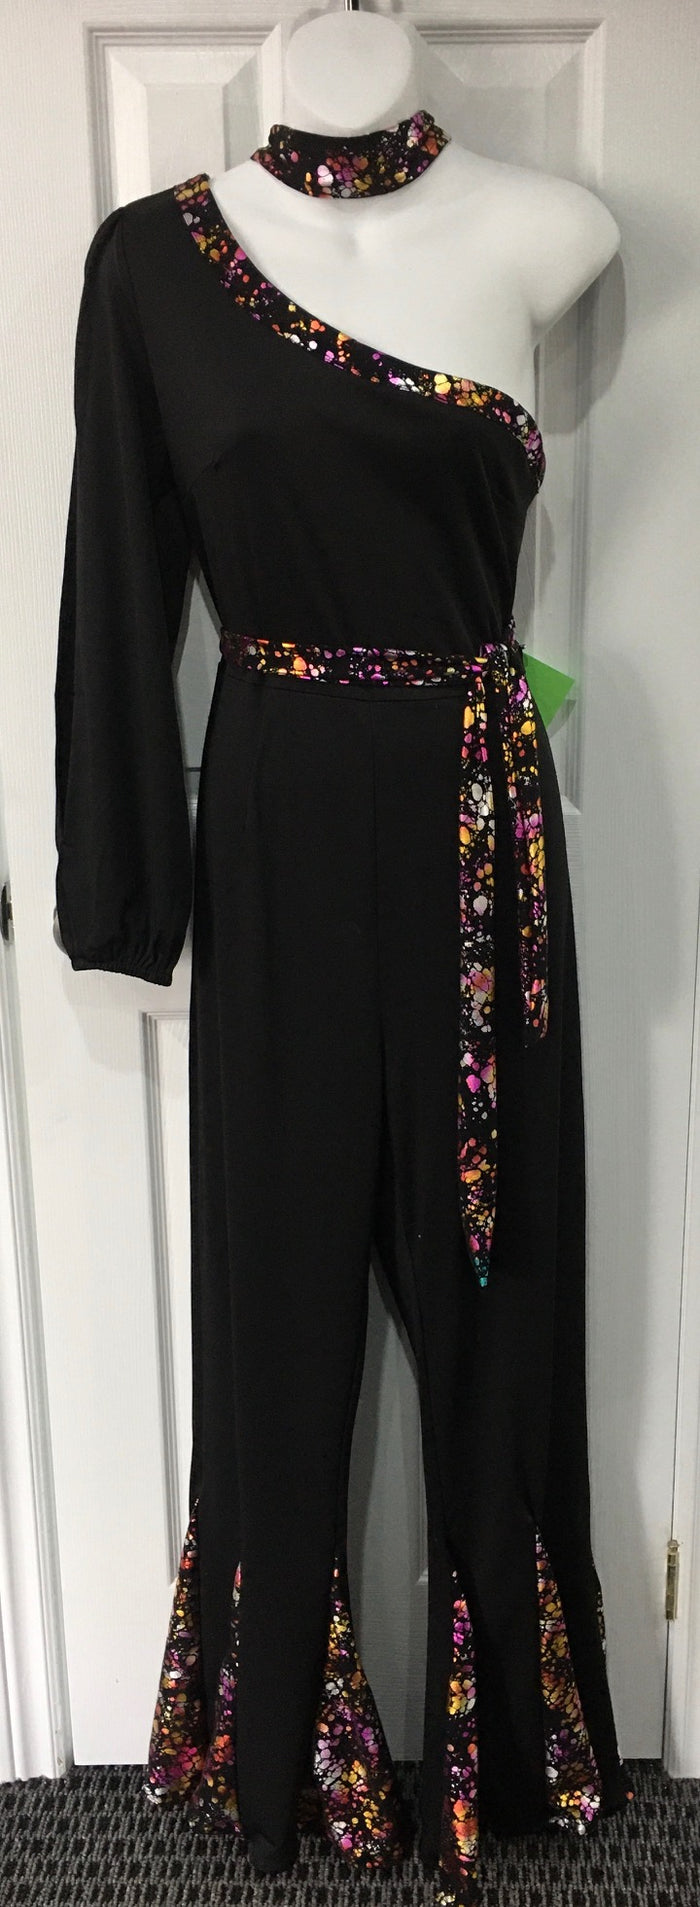 COSTUME RENTAL - X268 1970's Jumpsuit, Black Disco with multicolored trim